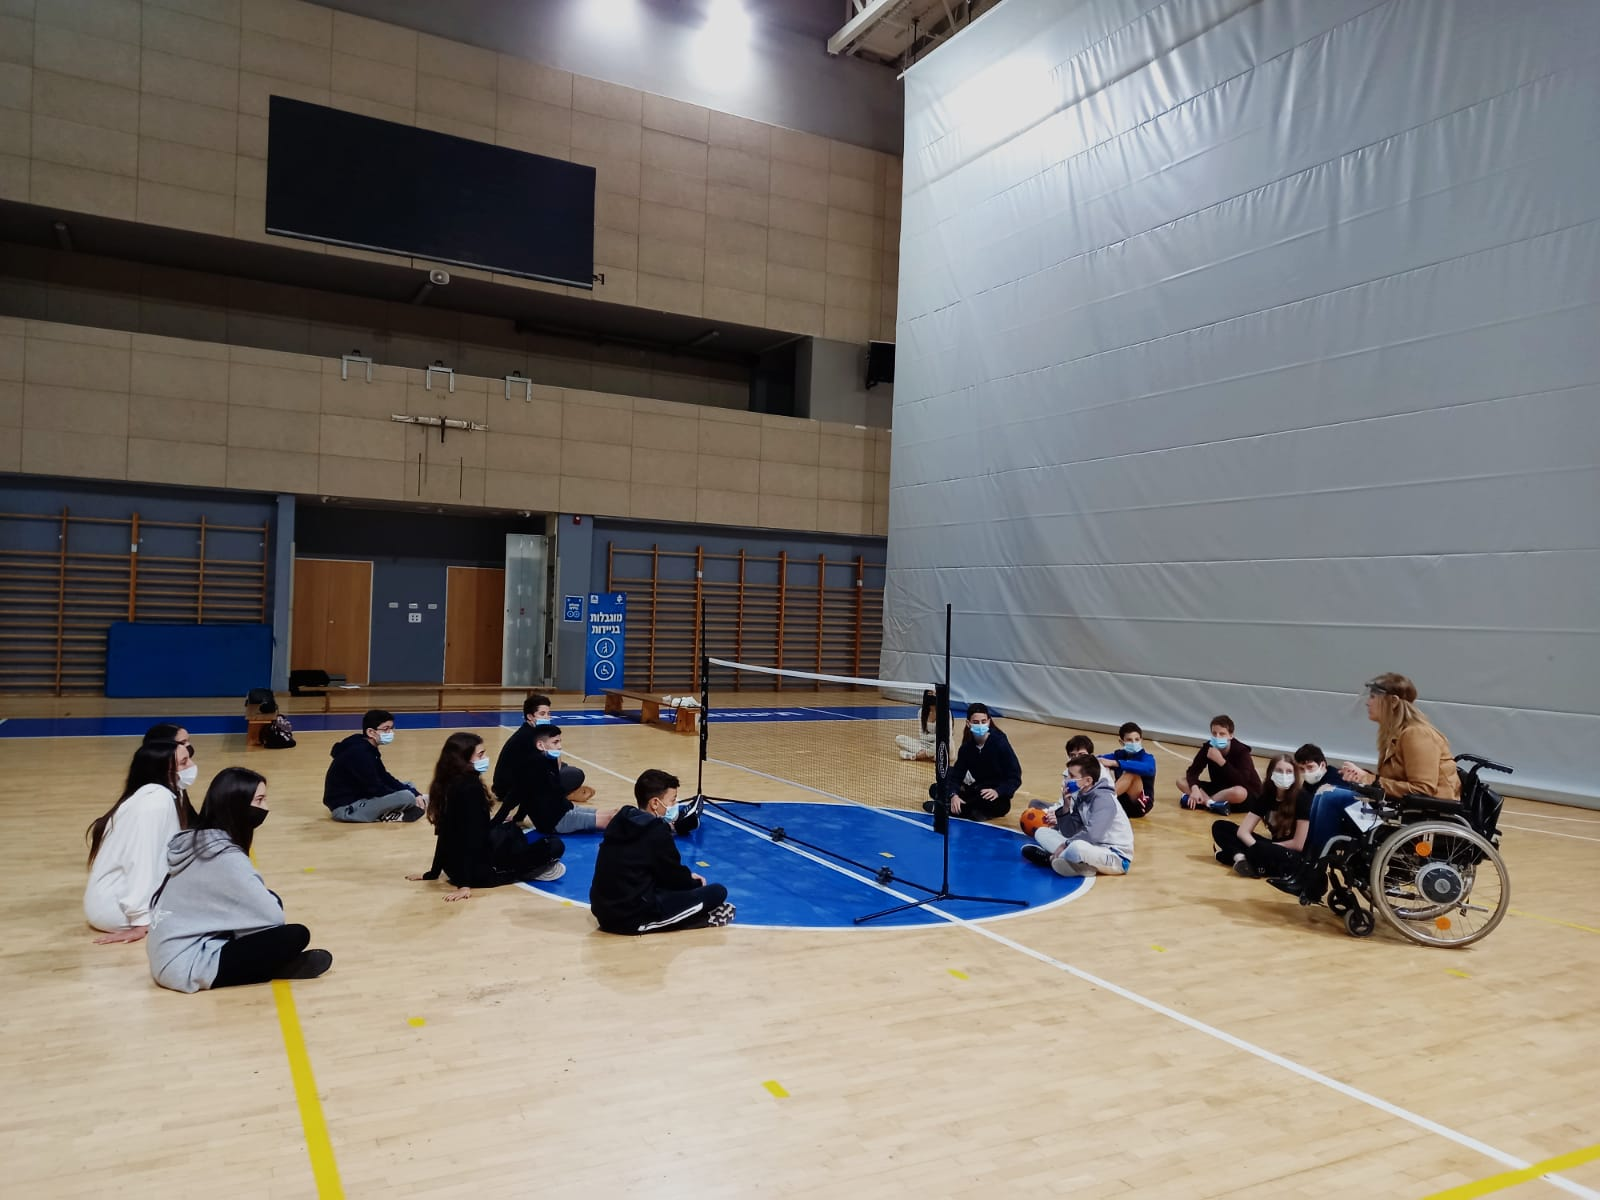 The students learned the rules of the Paralympic volleyball game